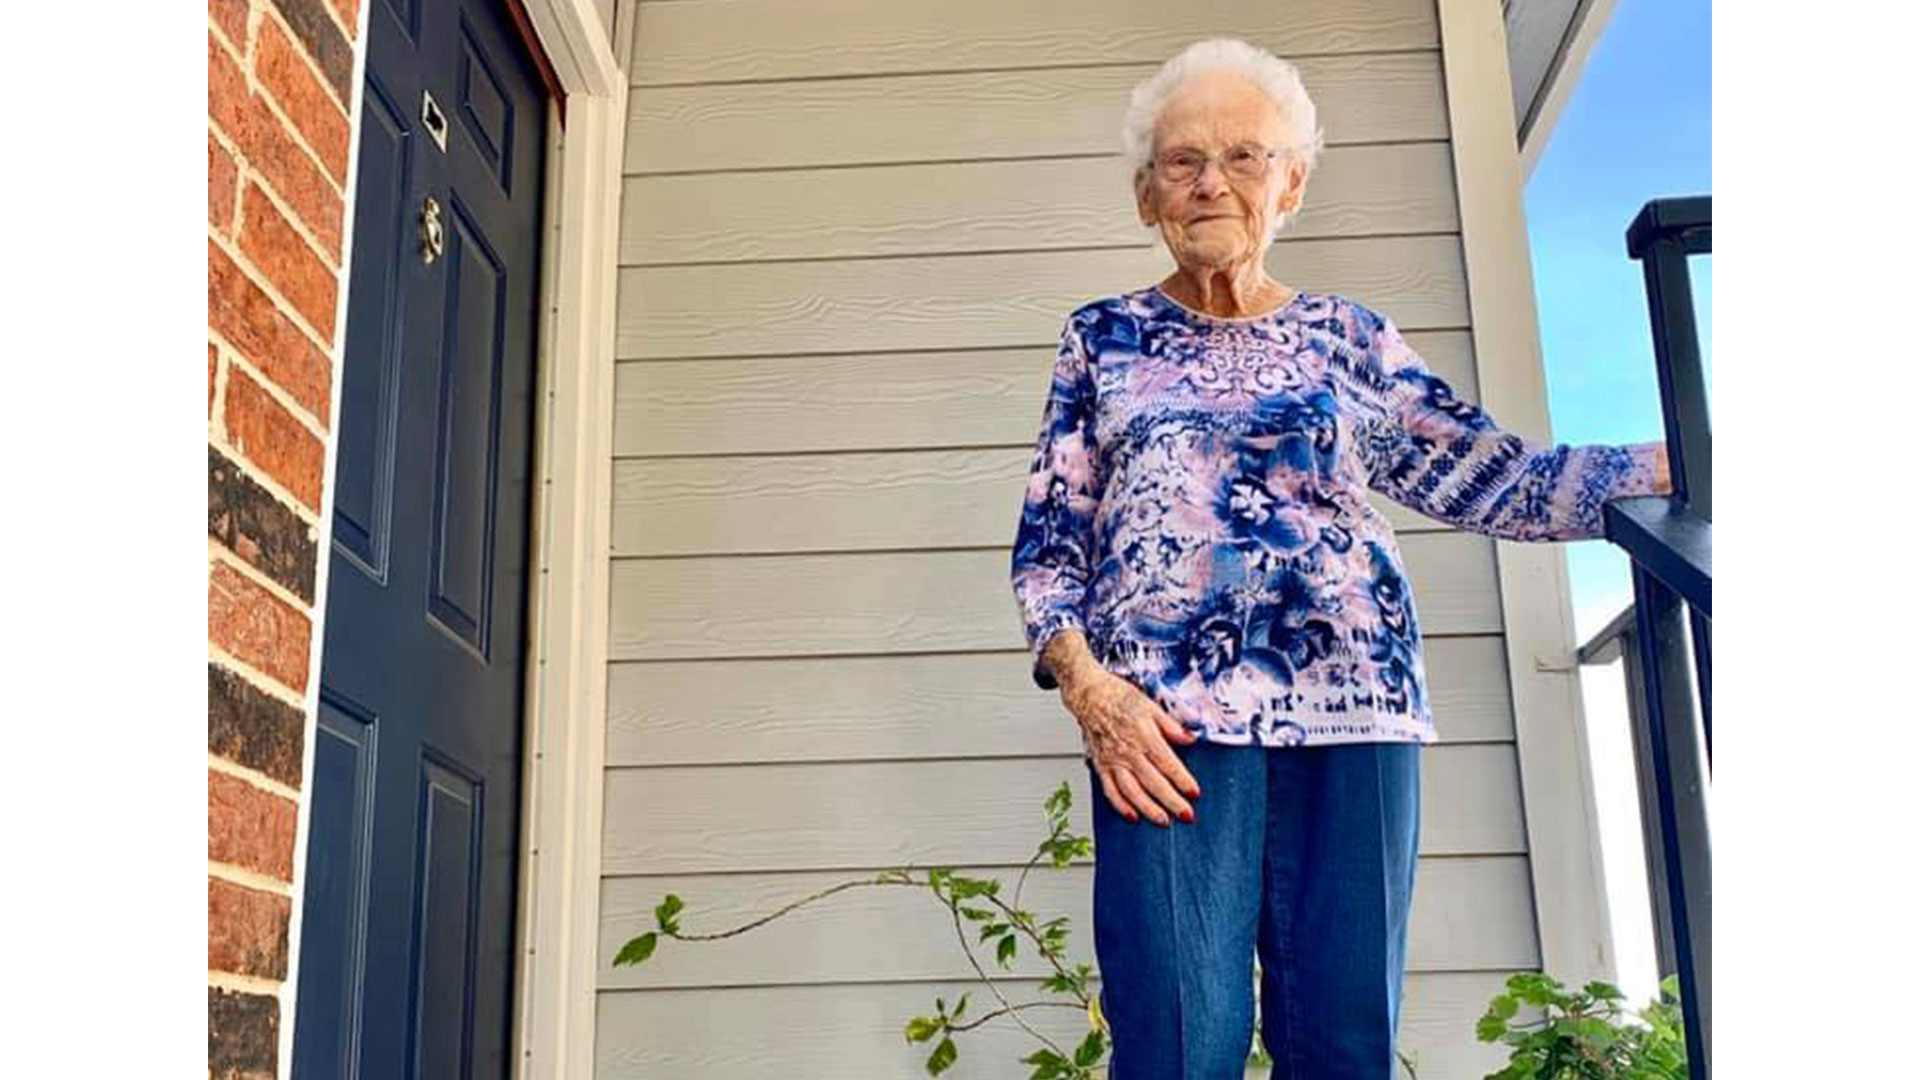 Texas Chick-fil-A Asks for Help Cheering up 89-Year-Old Employee in Quarantine